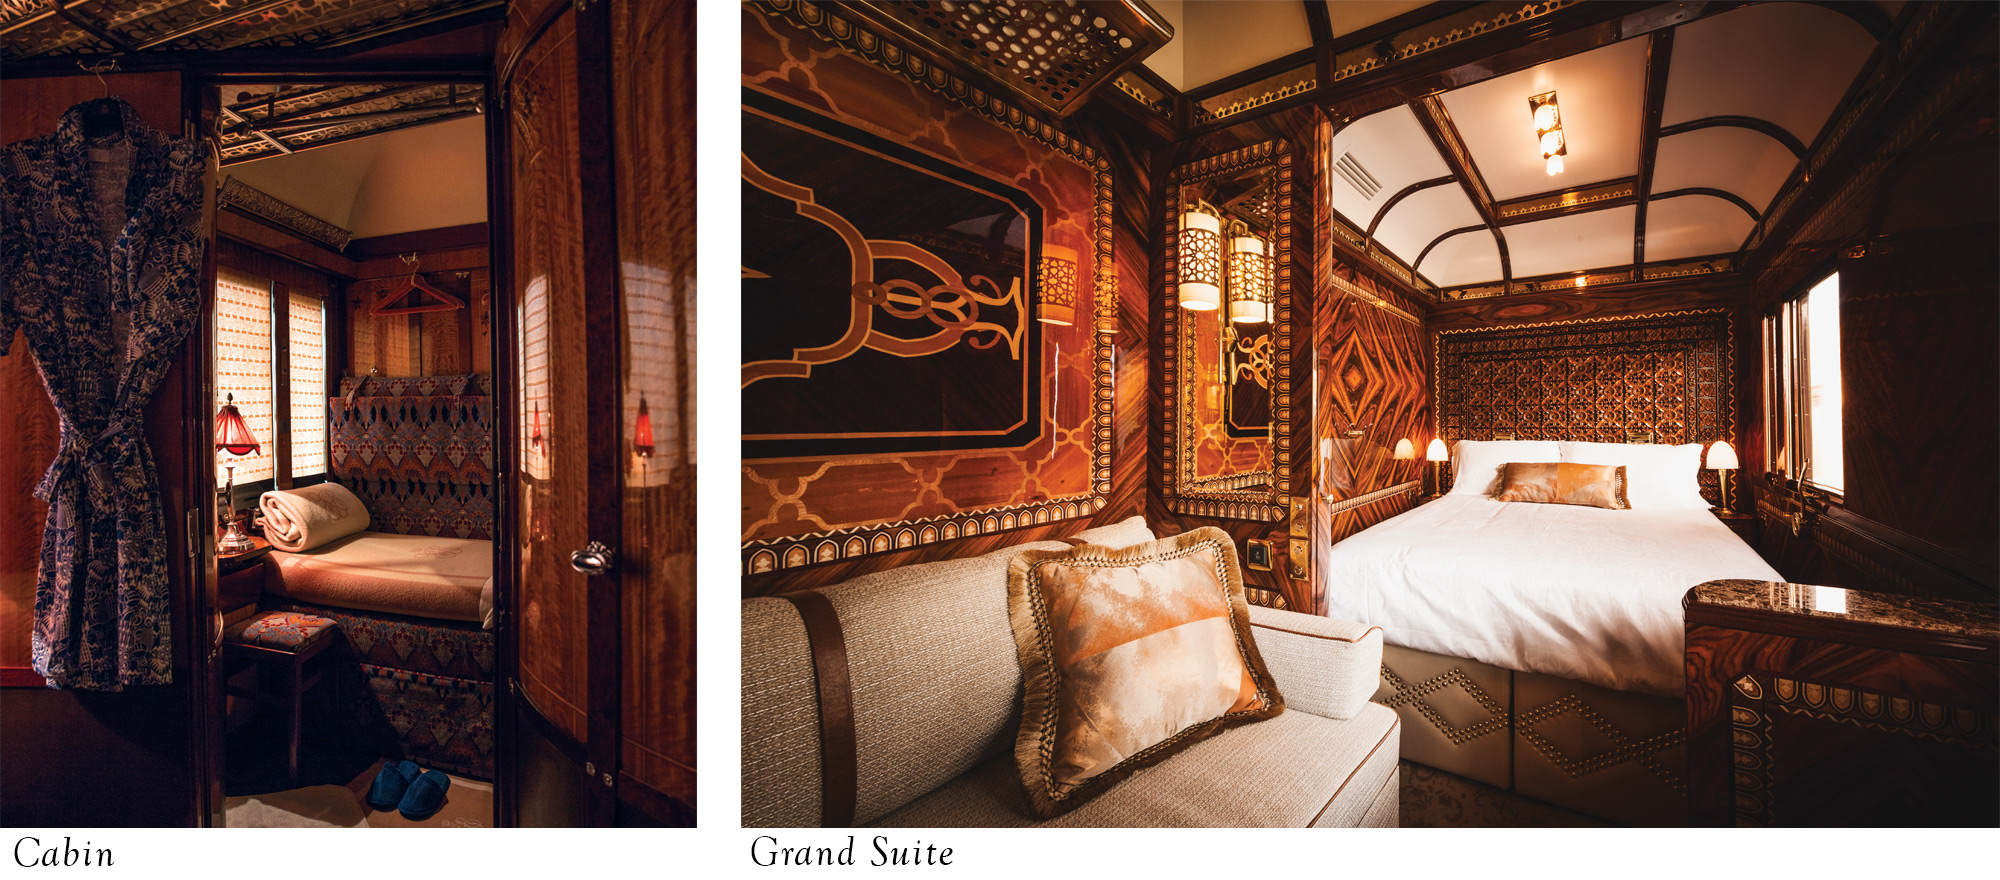 Accommodation on the Venice Simplon-Orient-Express